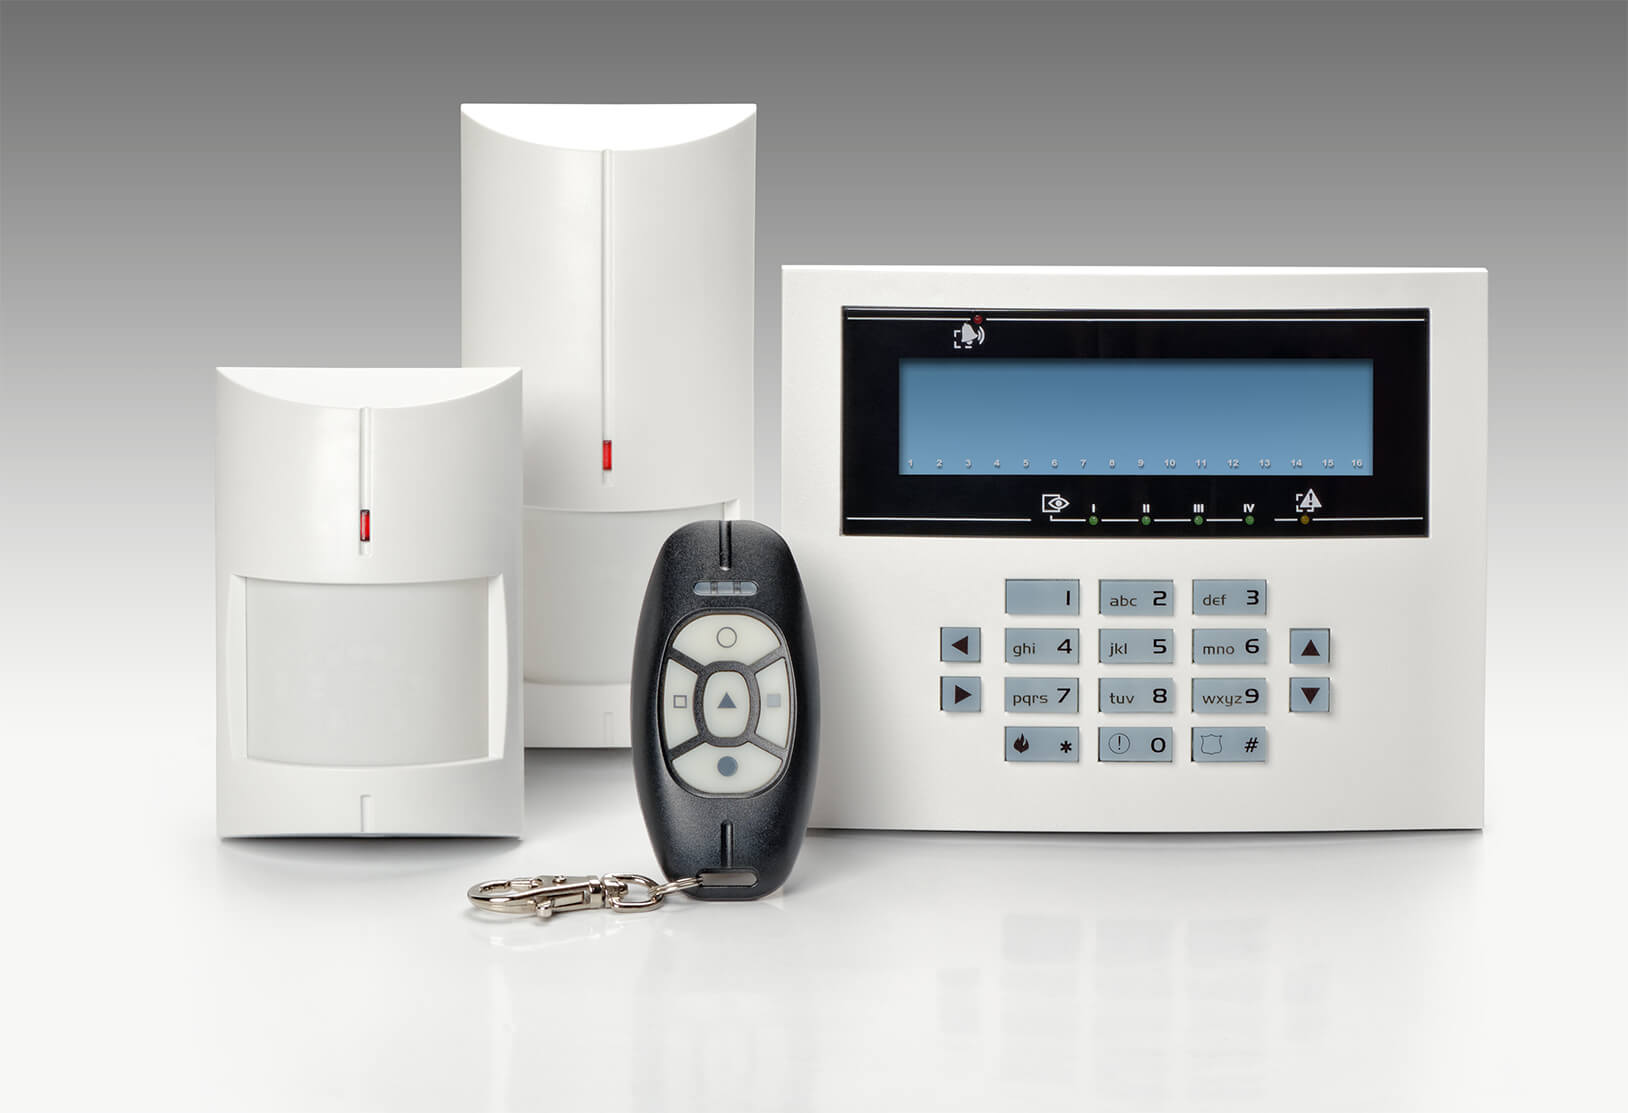 Commercial Burglar Alarms For Business in Catford SE6  - Local Catford SE6 burglar alarm company.Call 02078872244 - Dedicated to Safety & Security. Companies, shops and homes ..